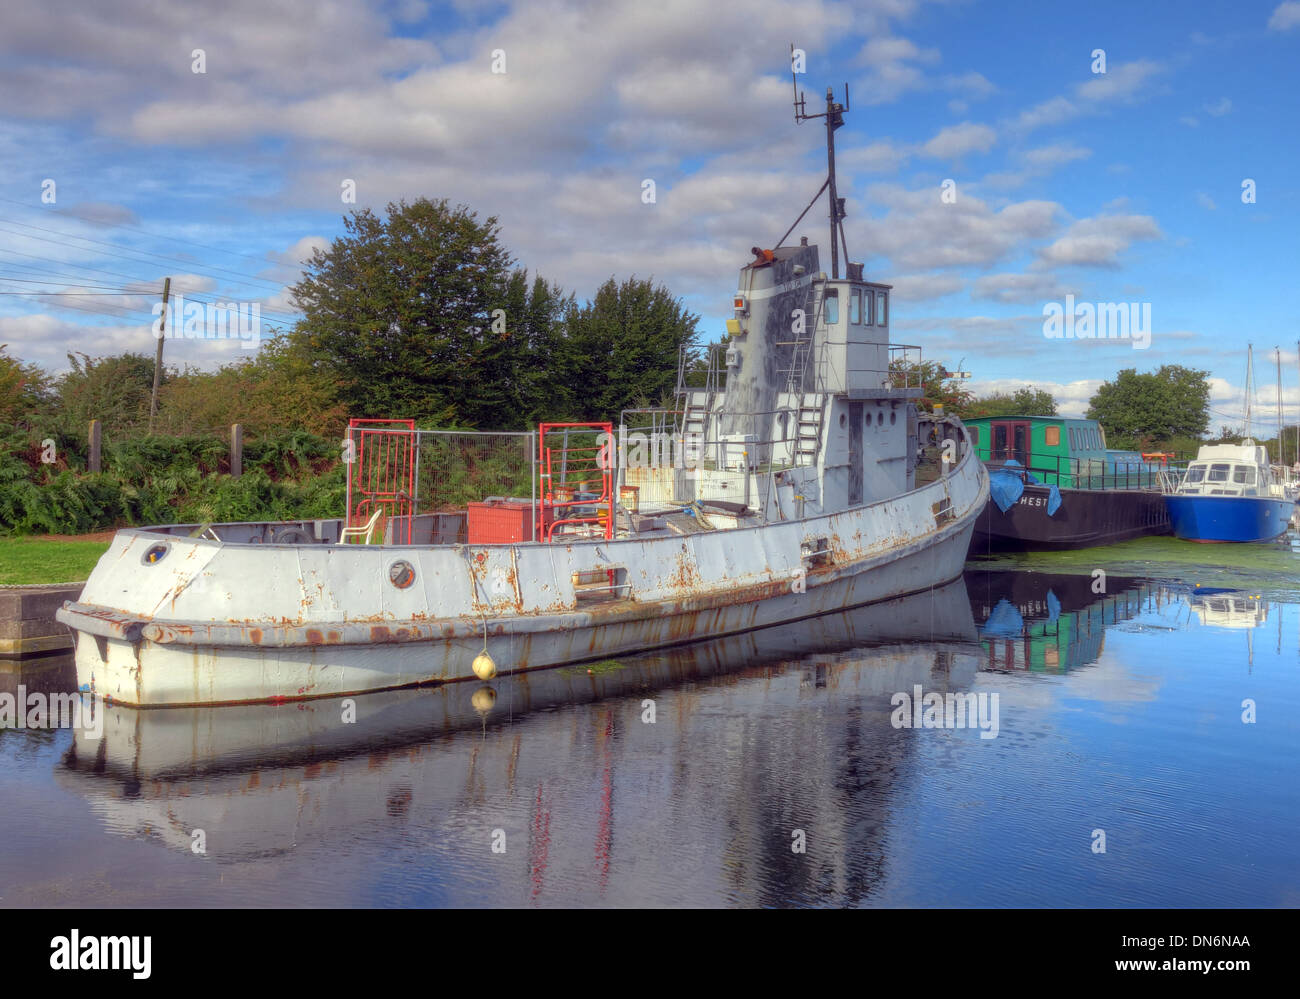 Boat on the Sankey Canal Reflection Warrington Cheshire England UK - Stock Image